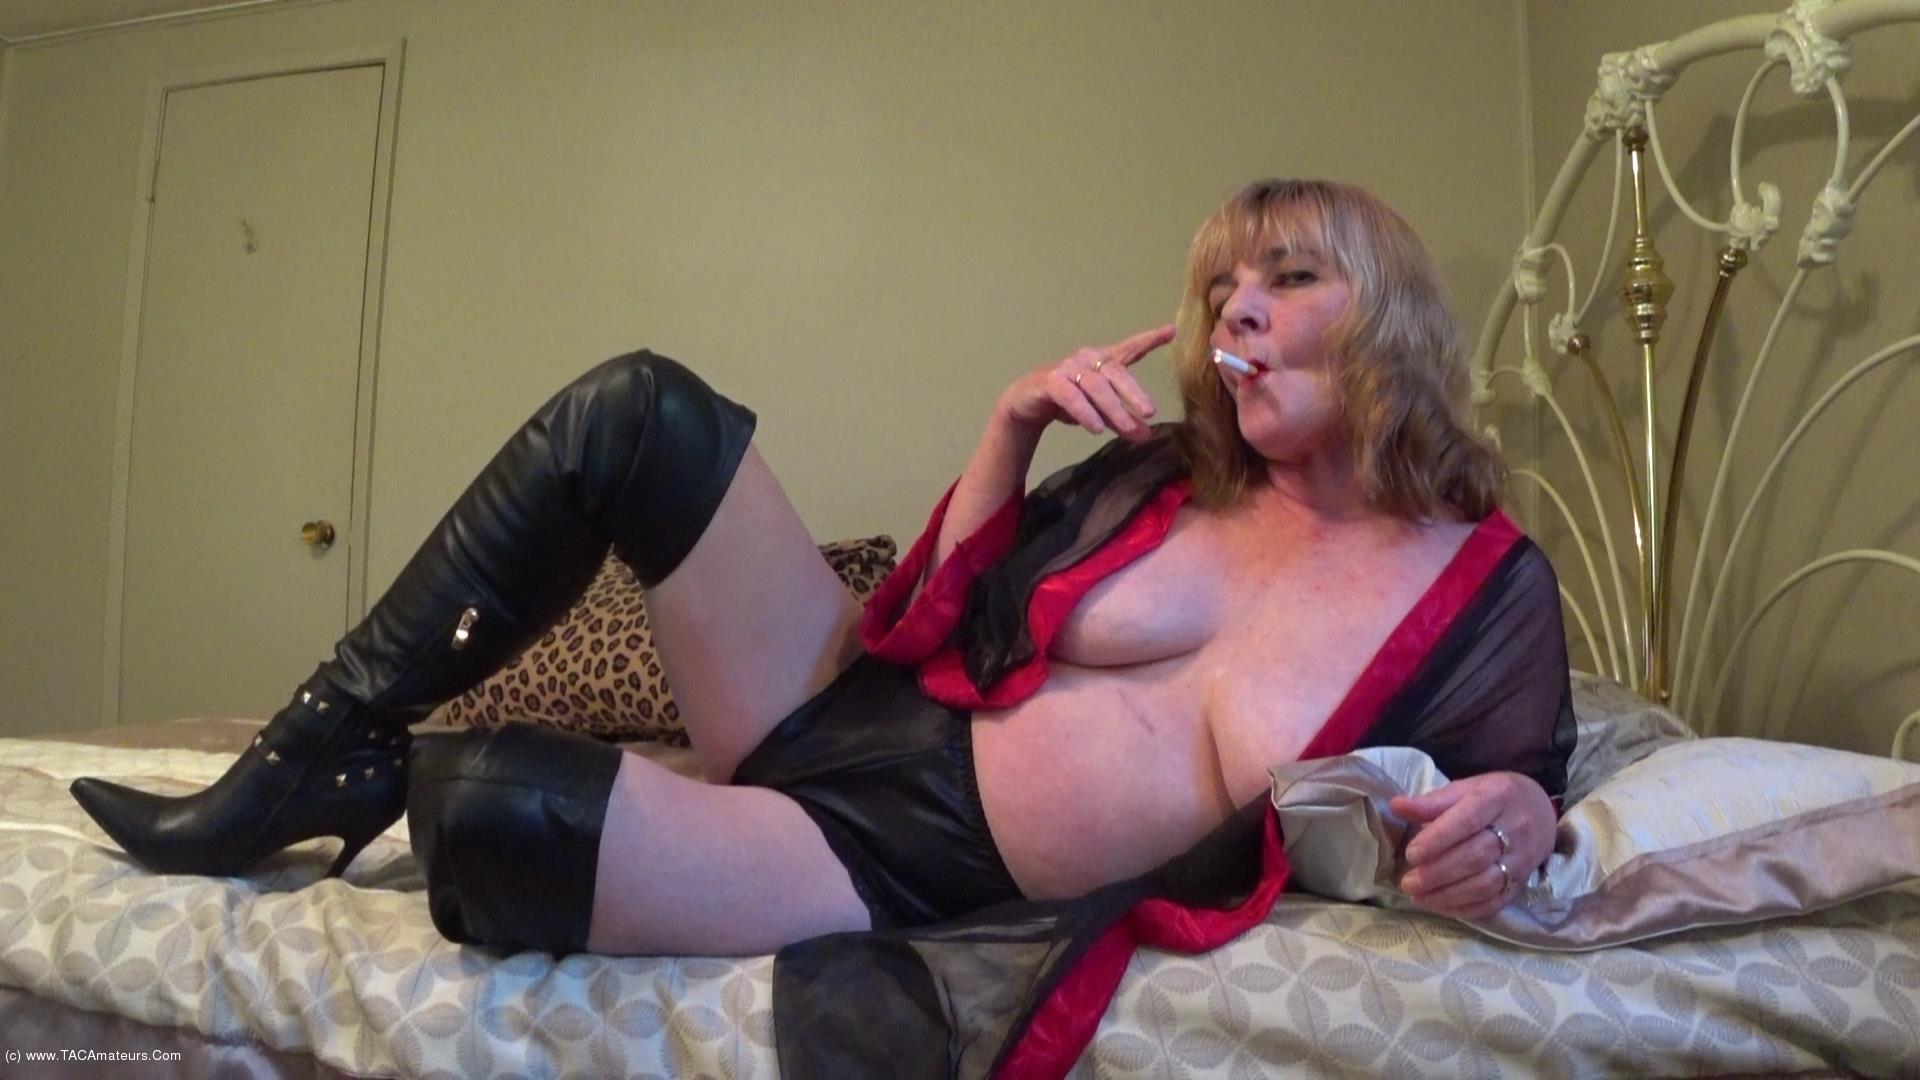 CougarBabeJolee - In Lingerie & Boots, Smoking While You Stroke scene 1